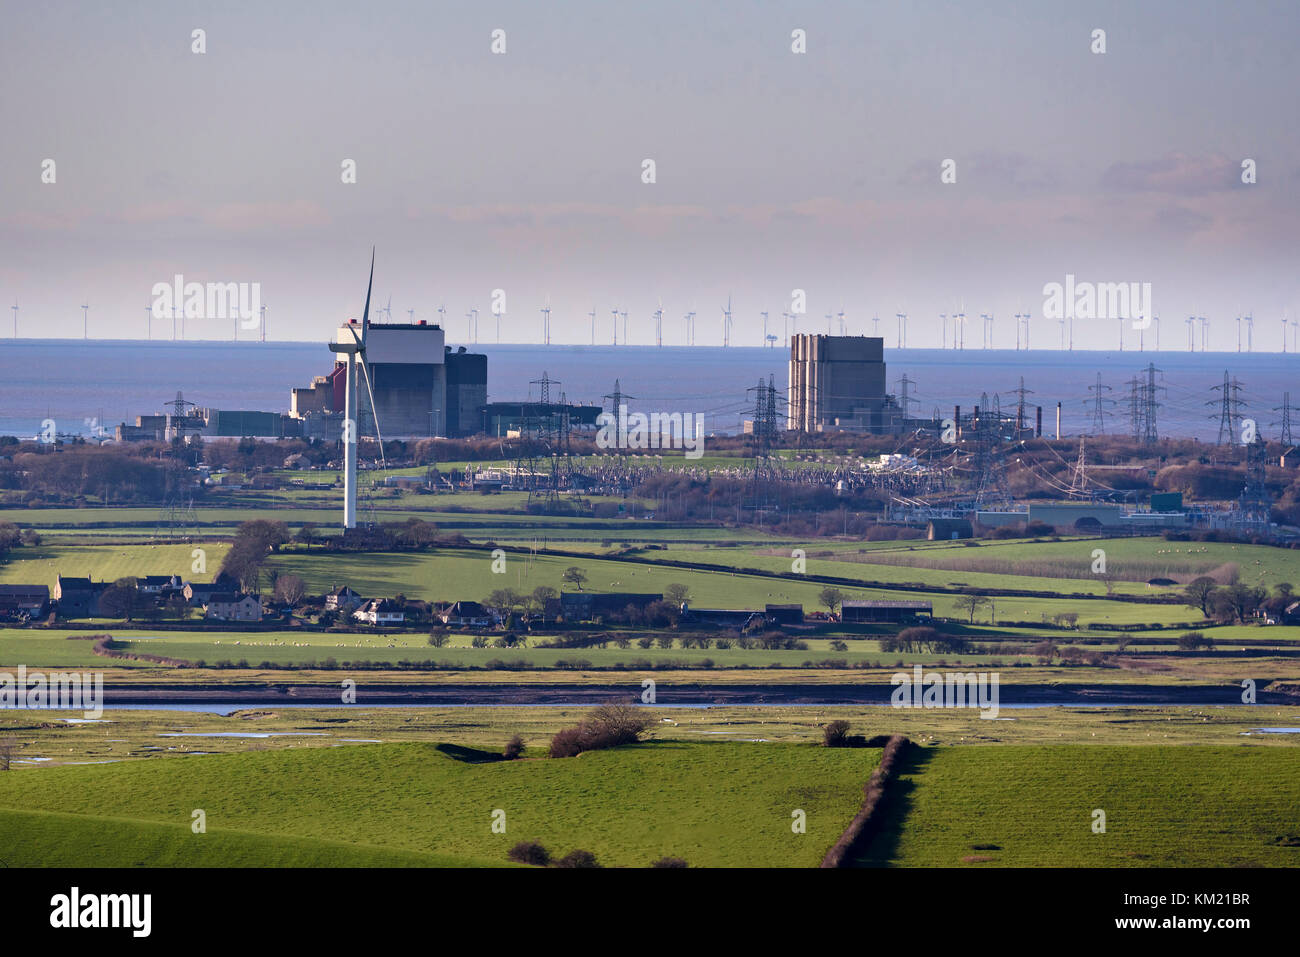 Heysham nuclear power stations. Windmills in Morecambe Bay. - Stock Image